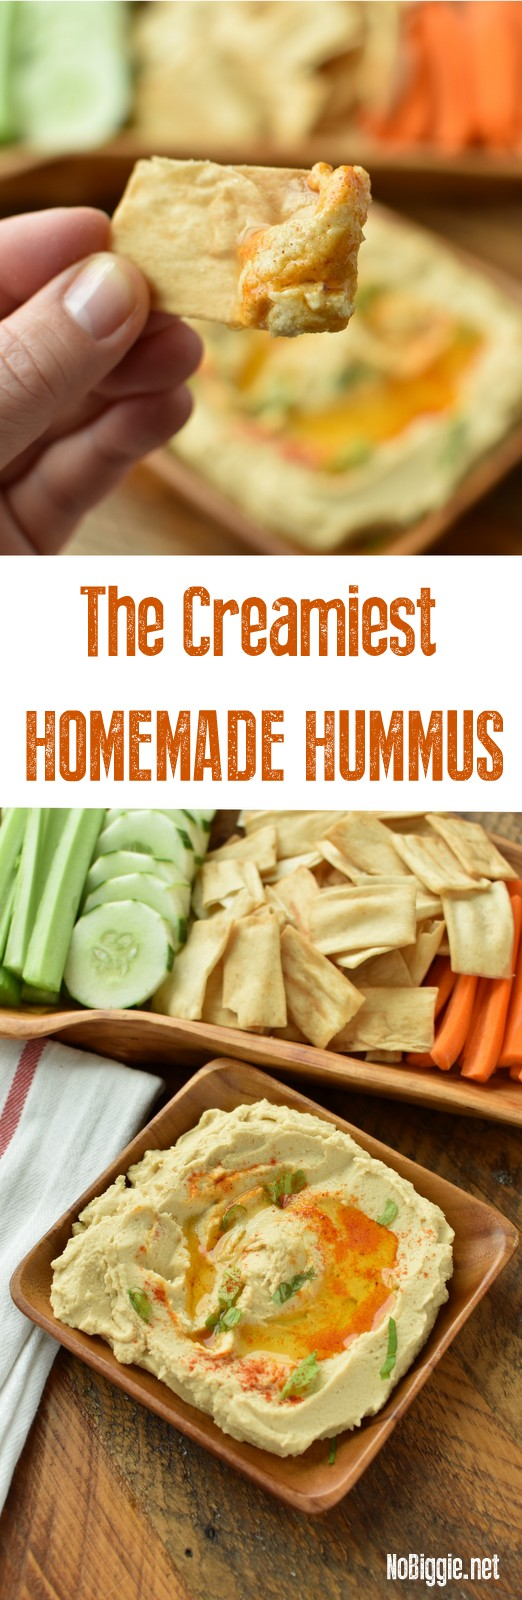 how to make the creamiest hummus | NoBiggie.net